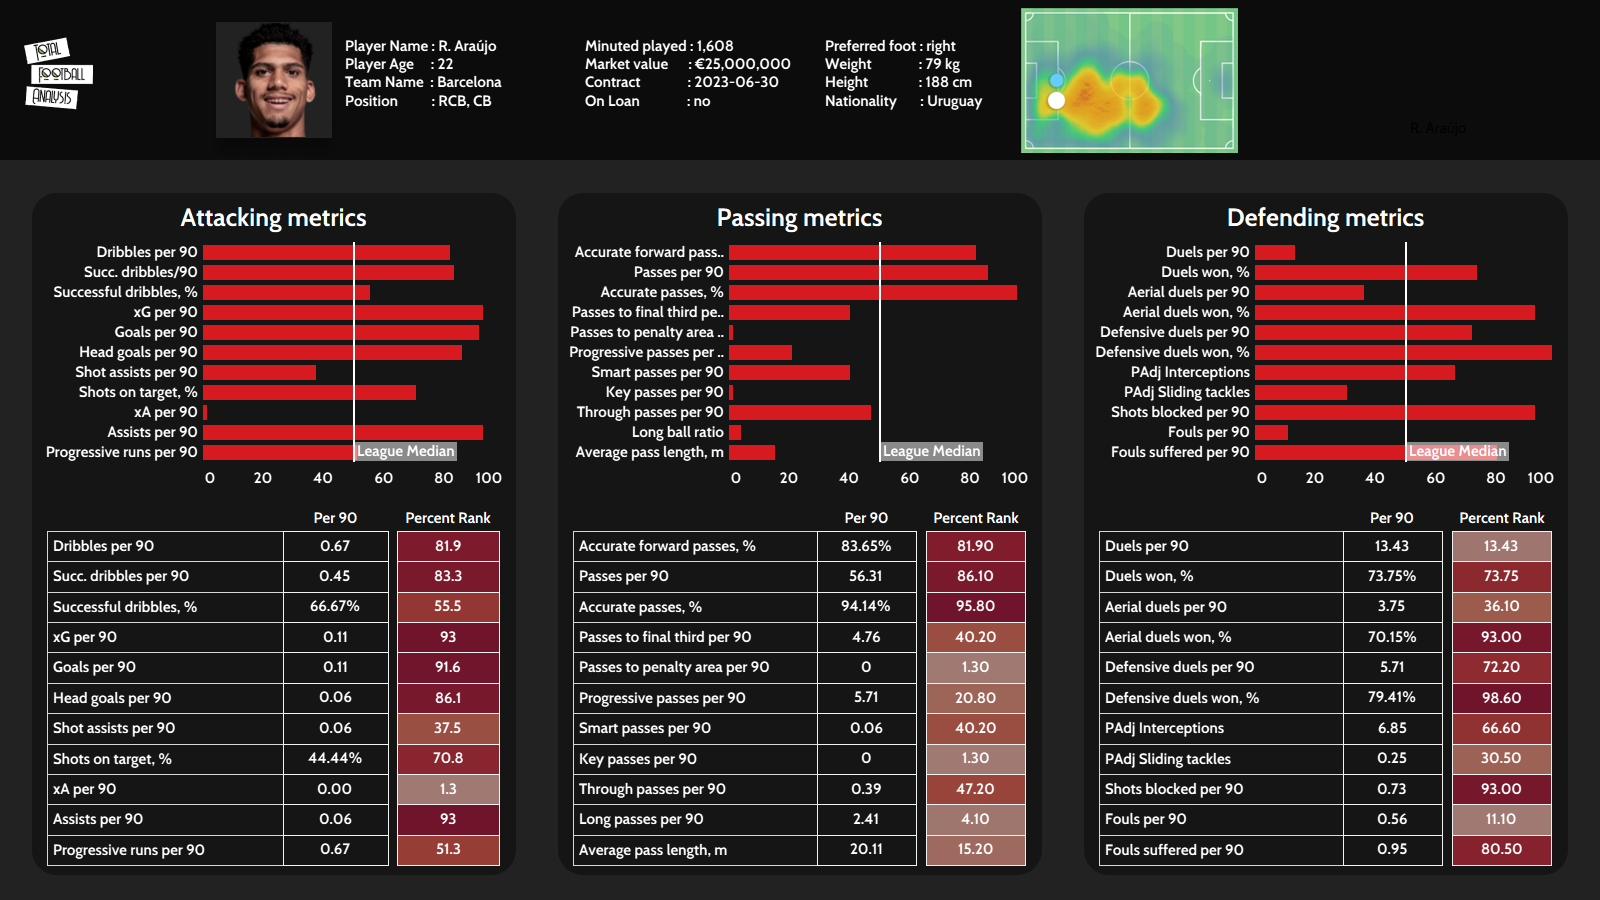 U23 La Liga defenders to watch out for in 2021/22 - data analysis - statistics